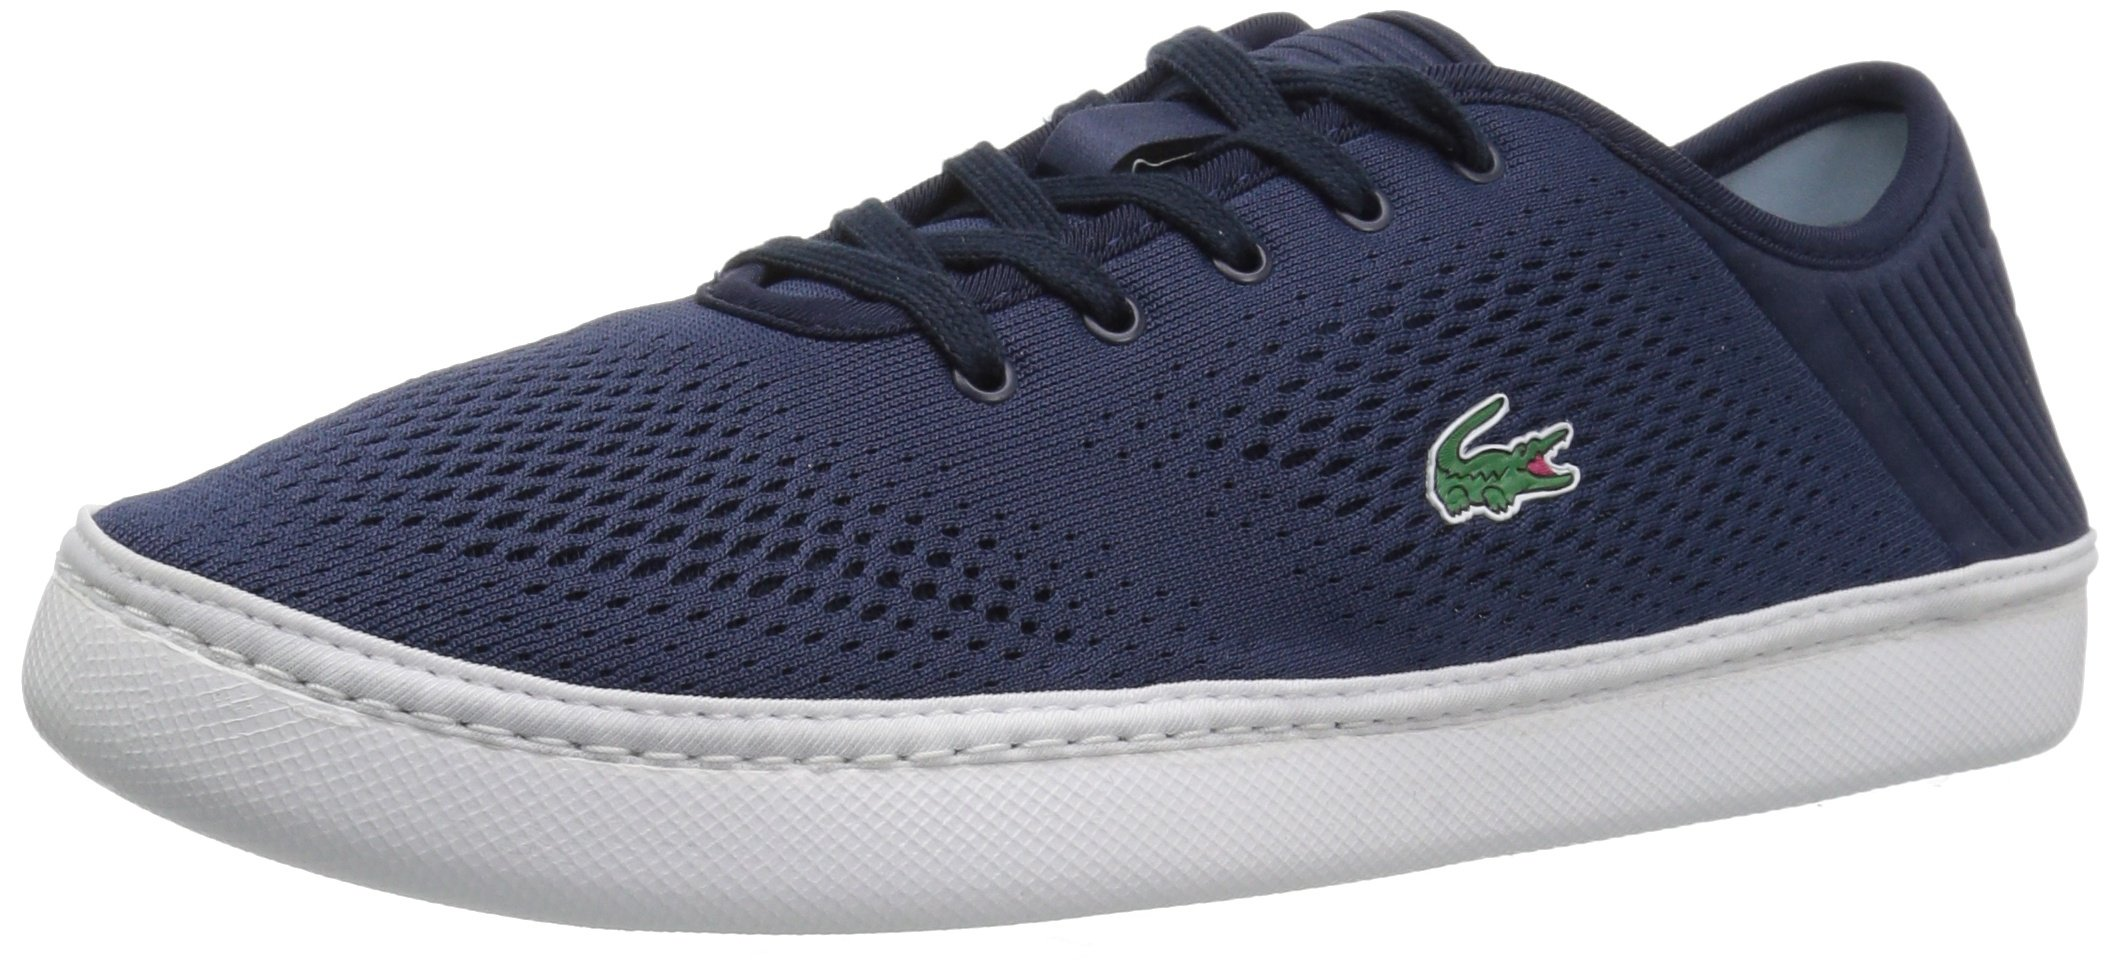 Lacoste Men's L.ydro Lace Sneakers,NVY/White Textile,10.5 M US by Lacoste (Image #1)